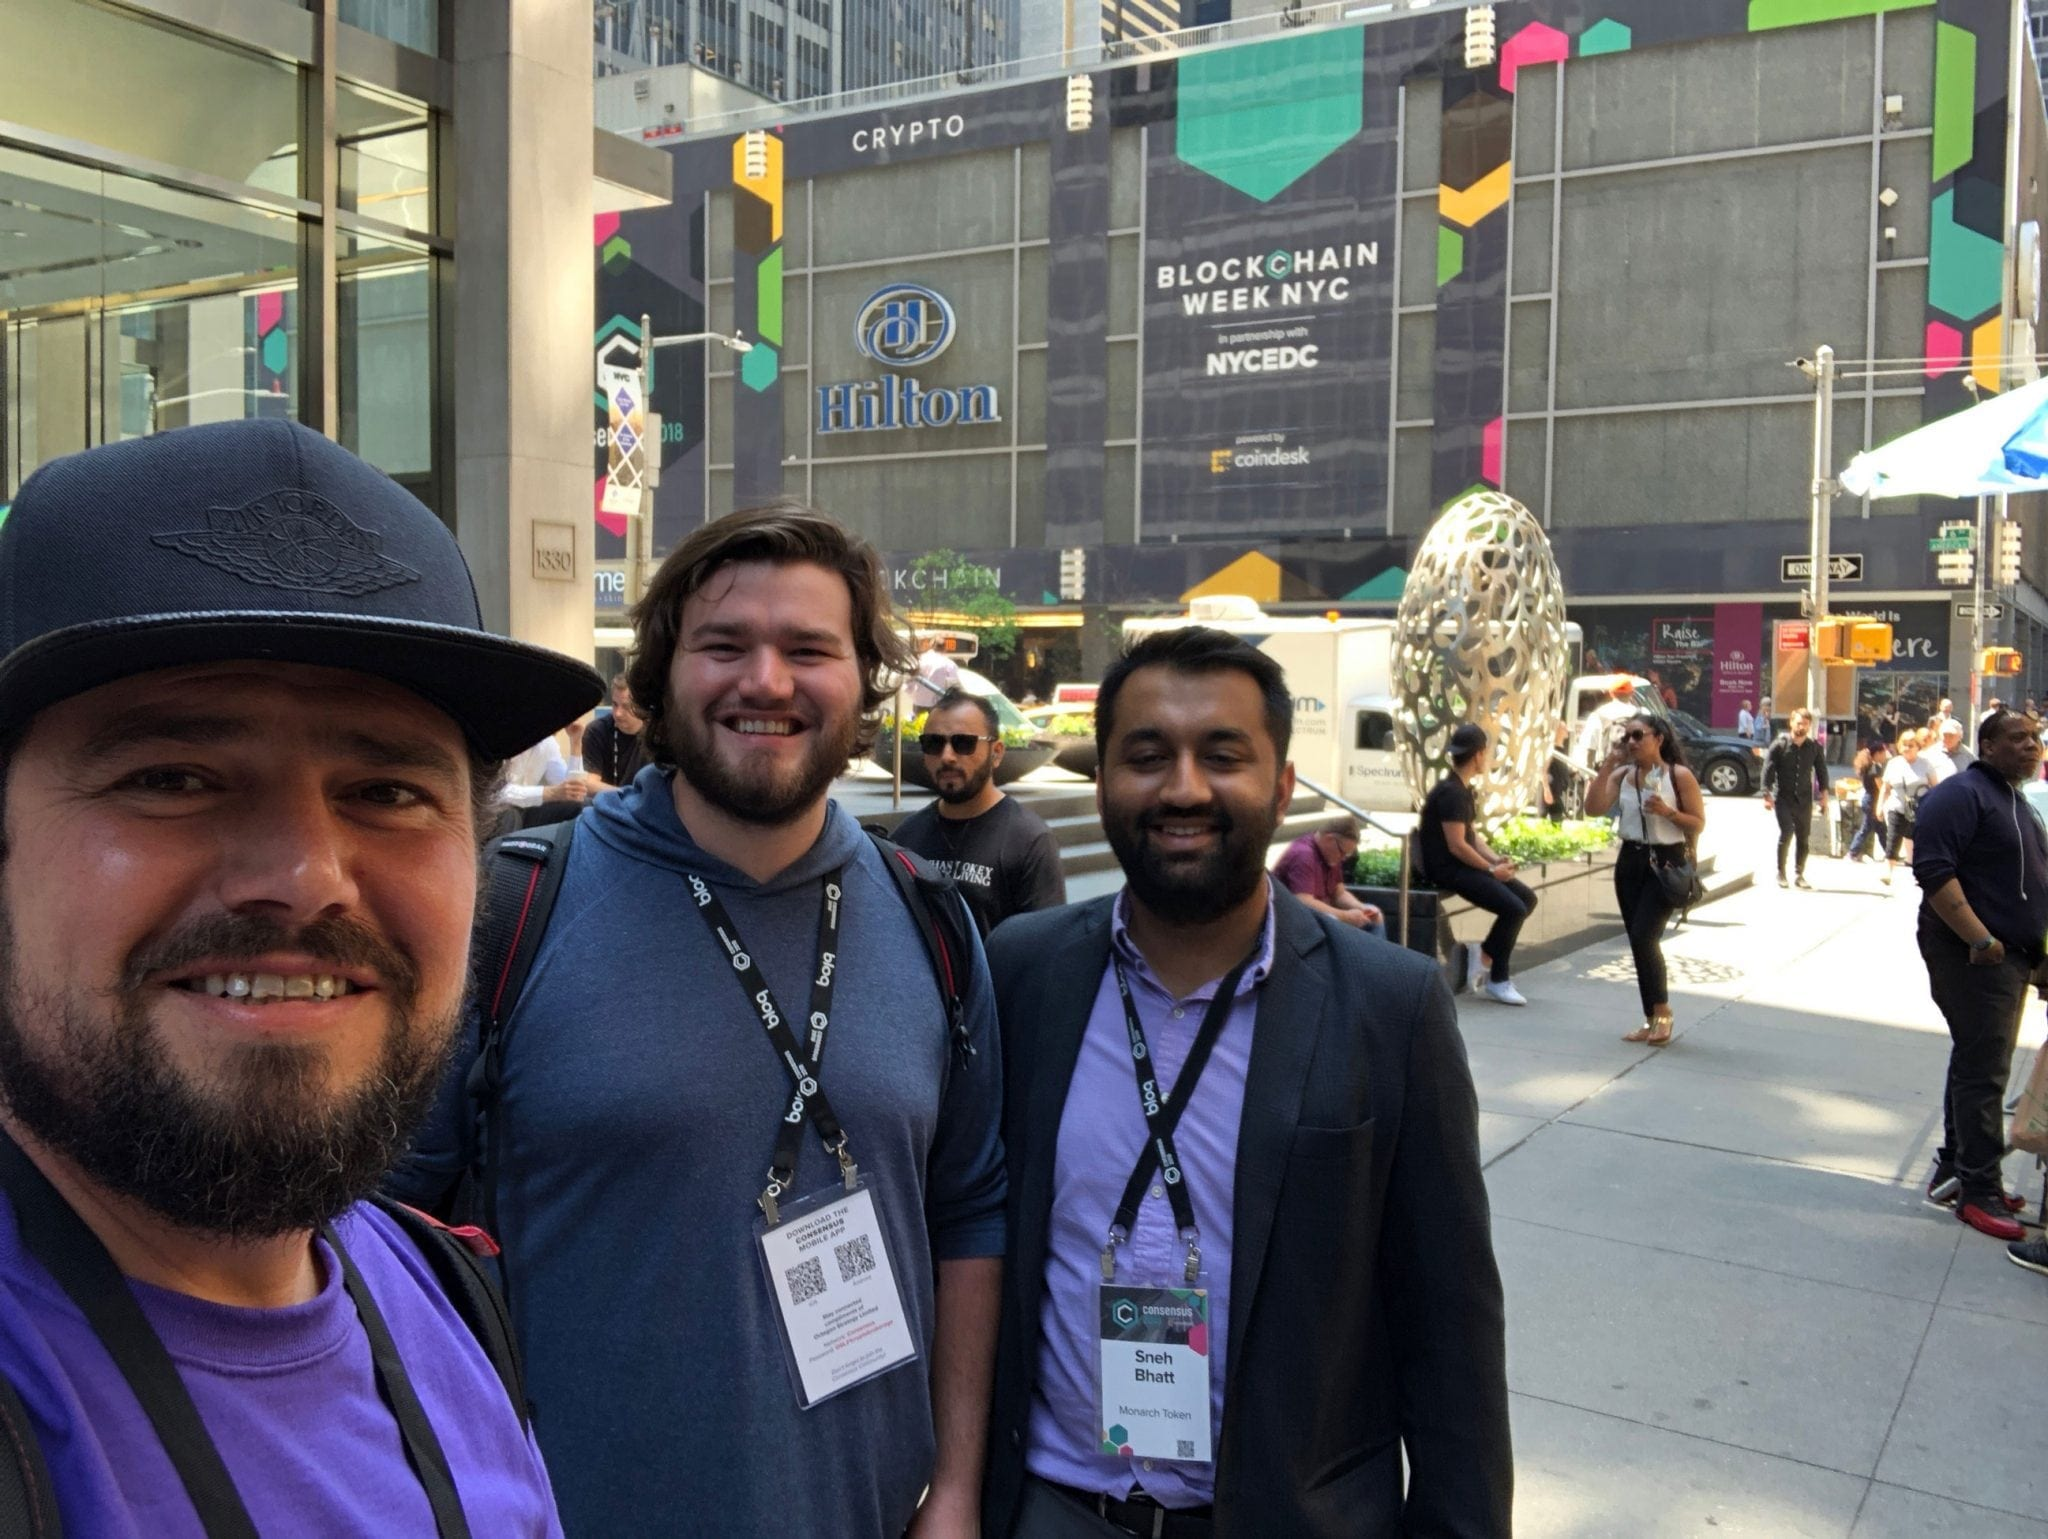 Monarch Team left to right, Robert Beadles, Aaron Beadles, Sneh Bhatt. Taken at Consensus 2018 in New York after securing several partnerships for Monarch.